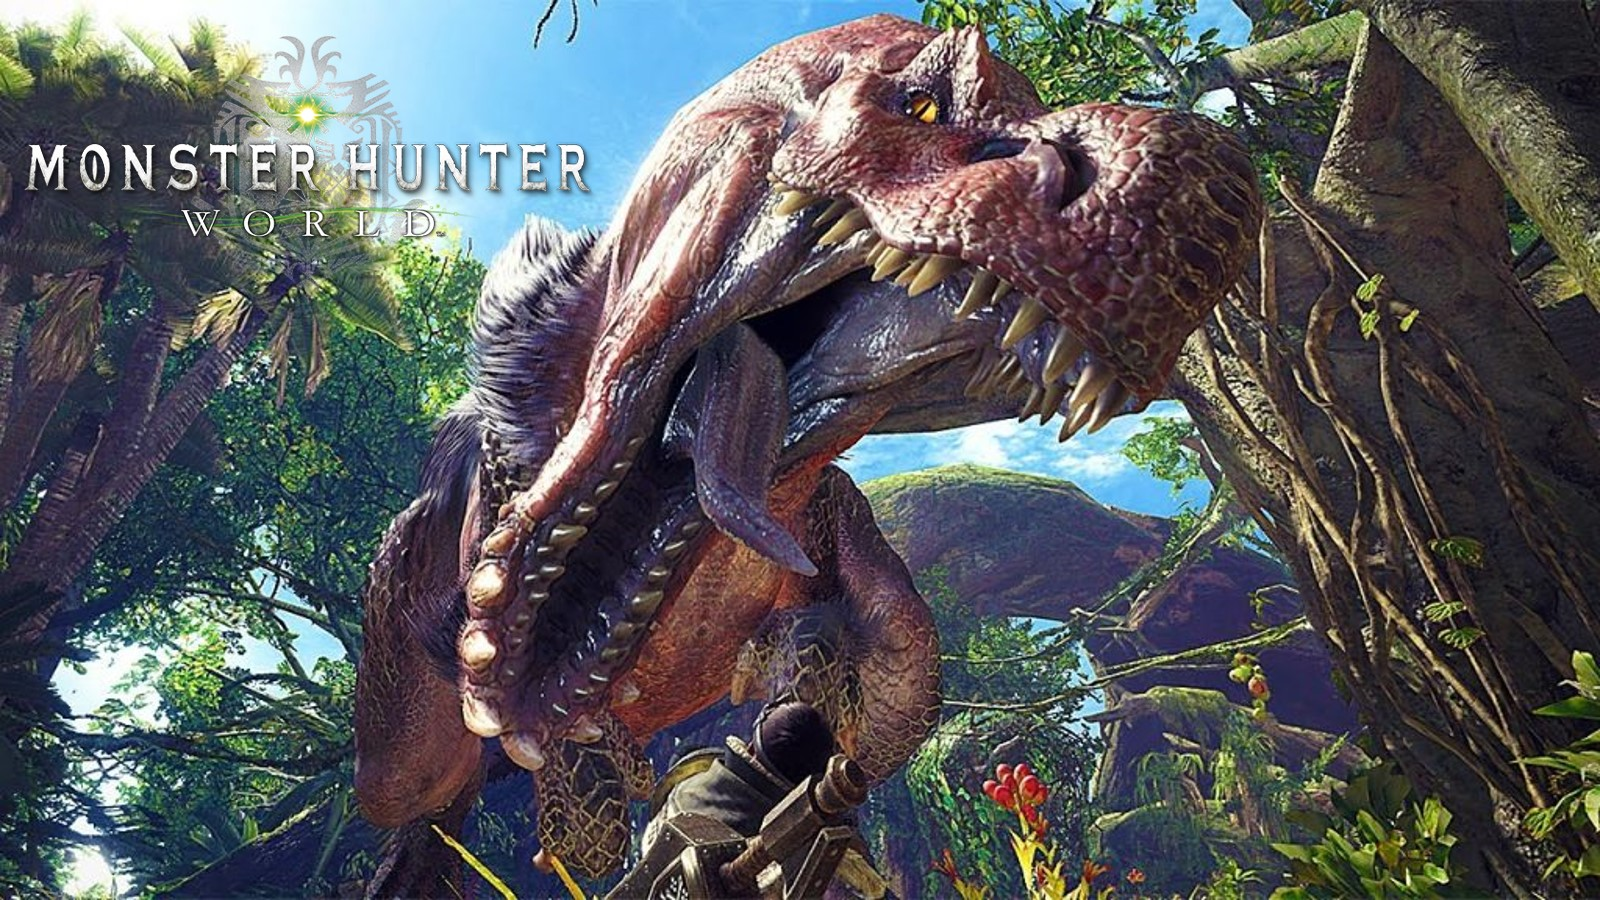 Monster Hunter: World Anjanath Guide – So besiegt Ihr das Biest